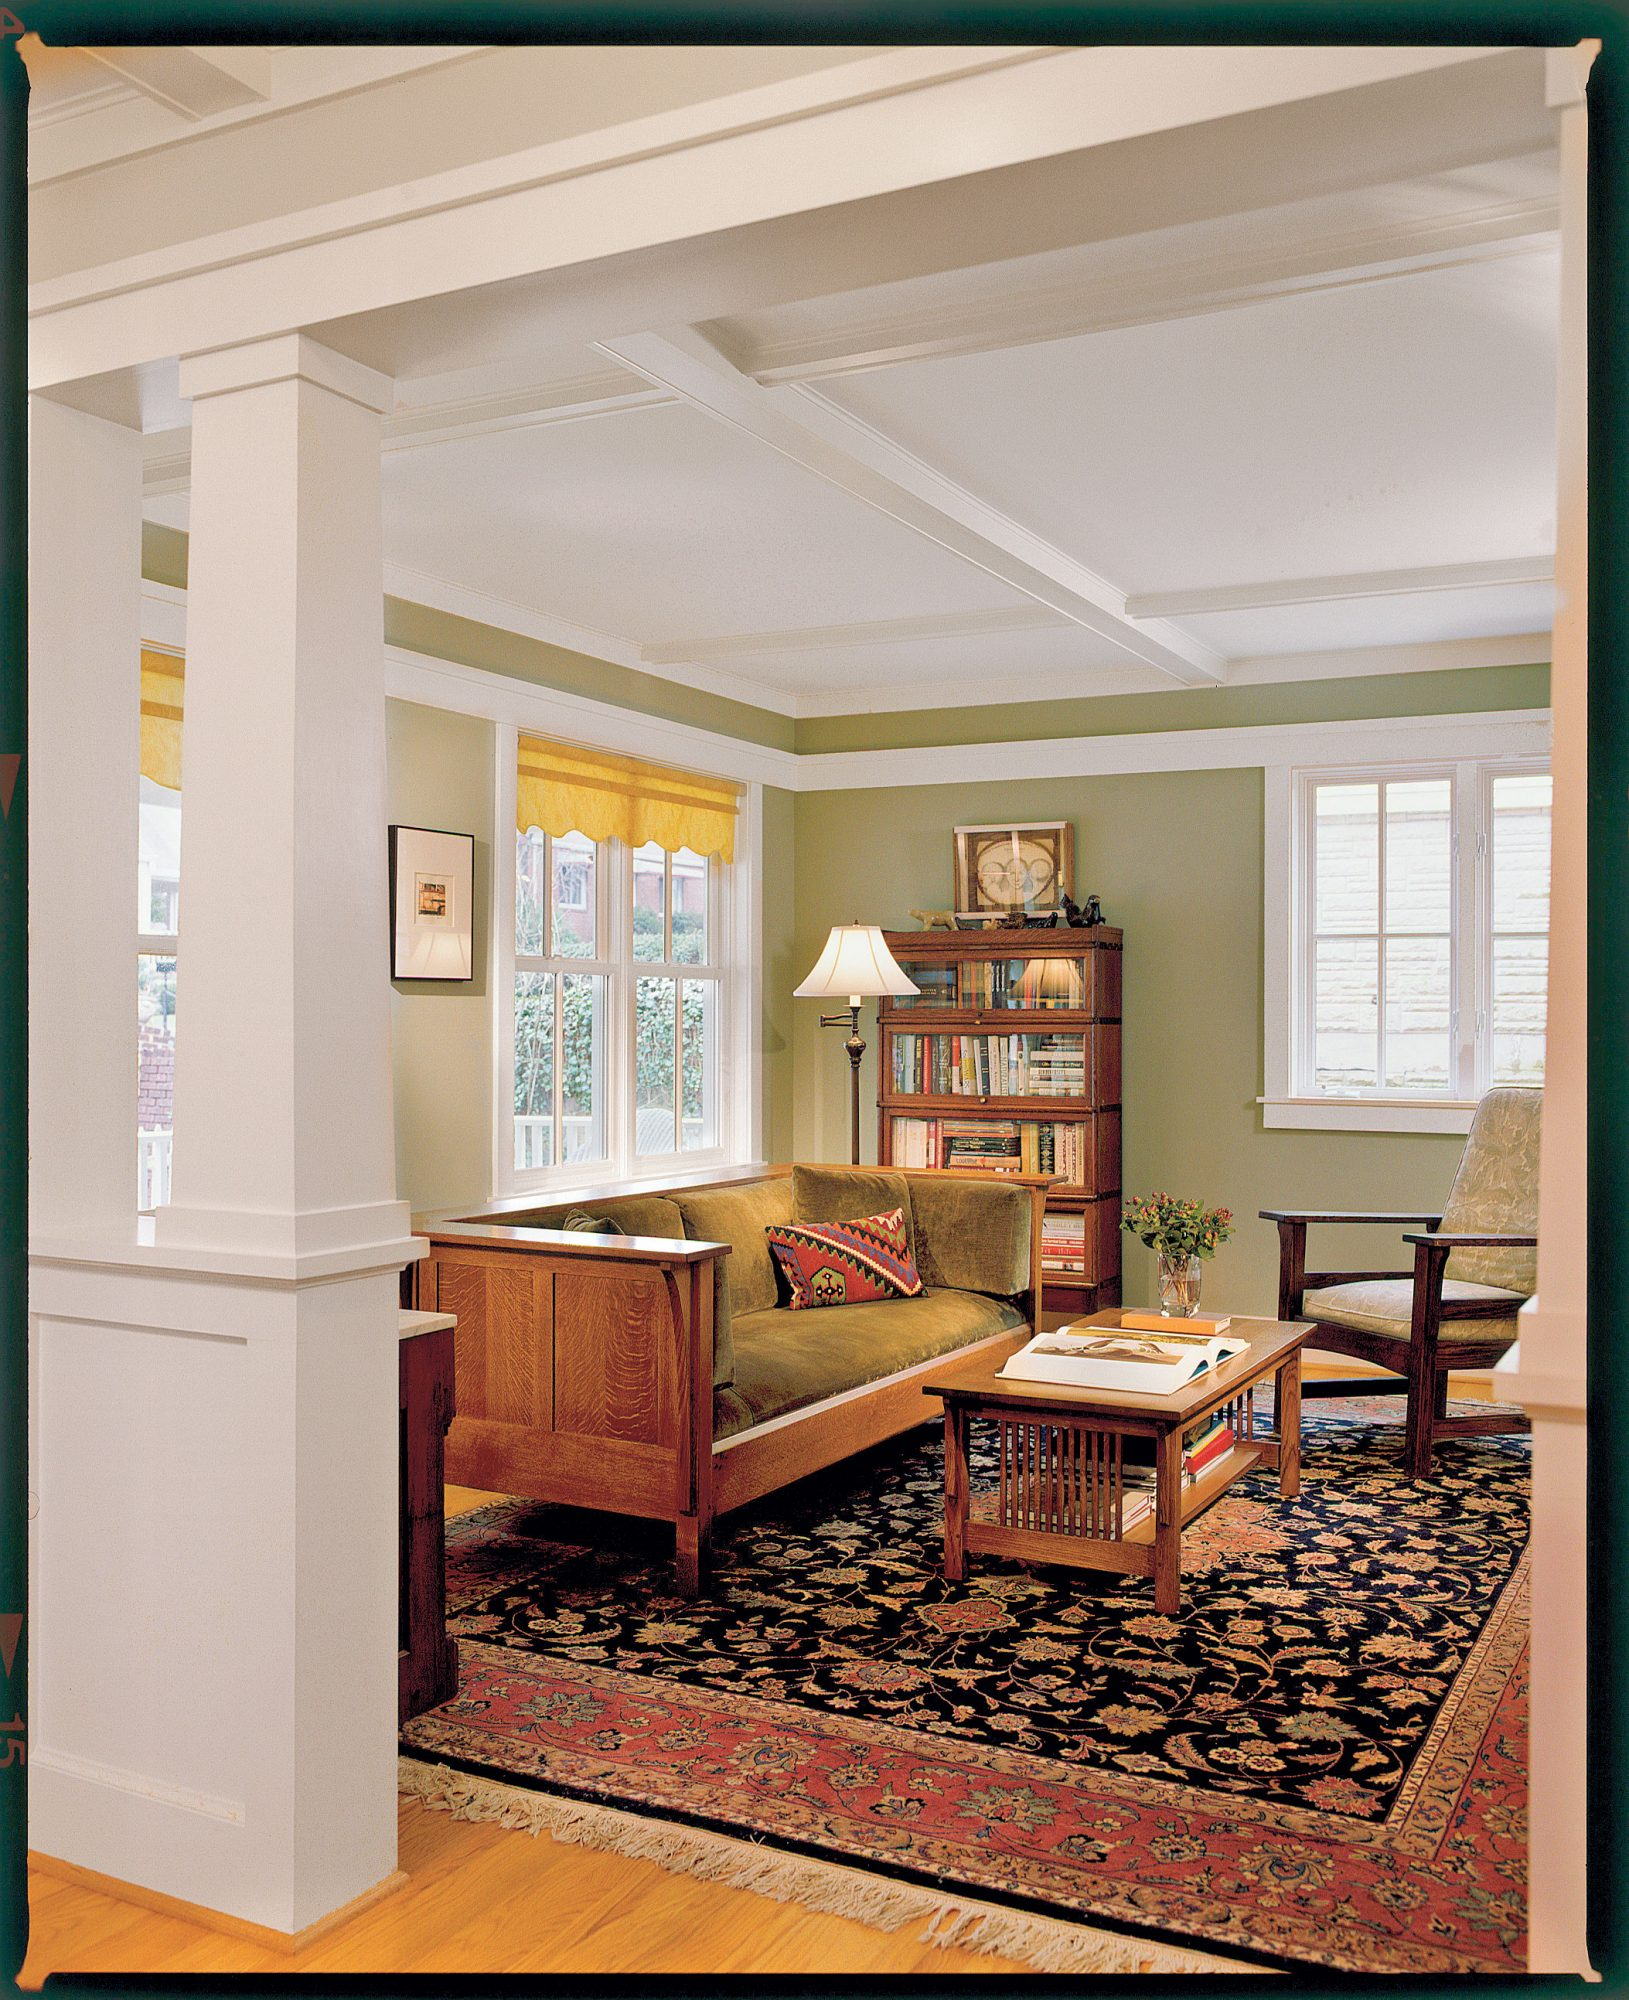 2005 Southern Home Awards: Bungalow Before and After